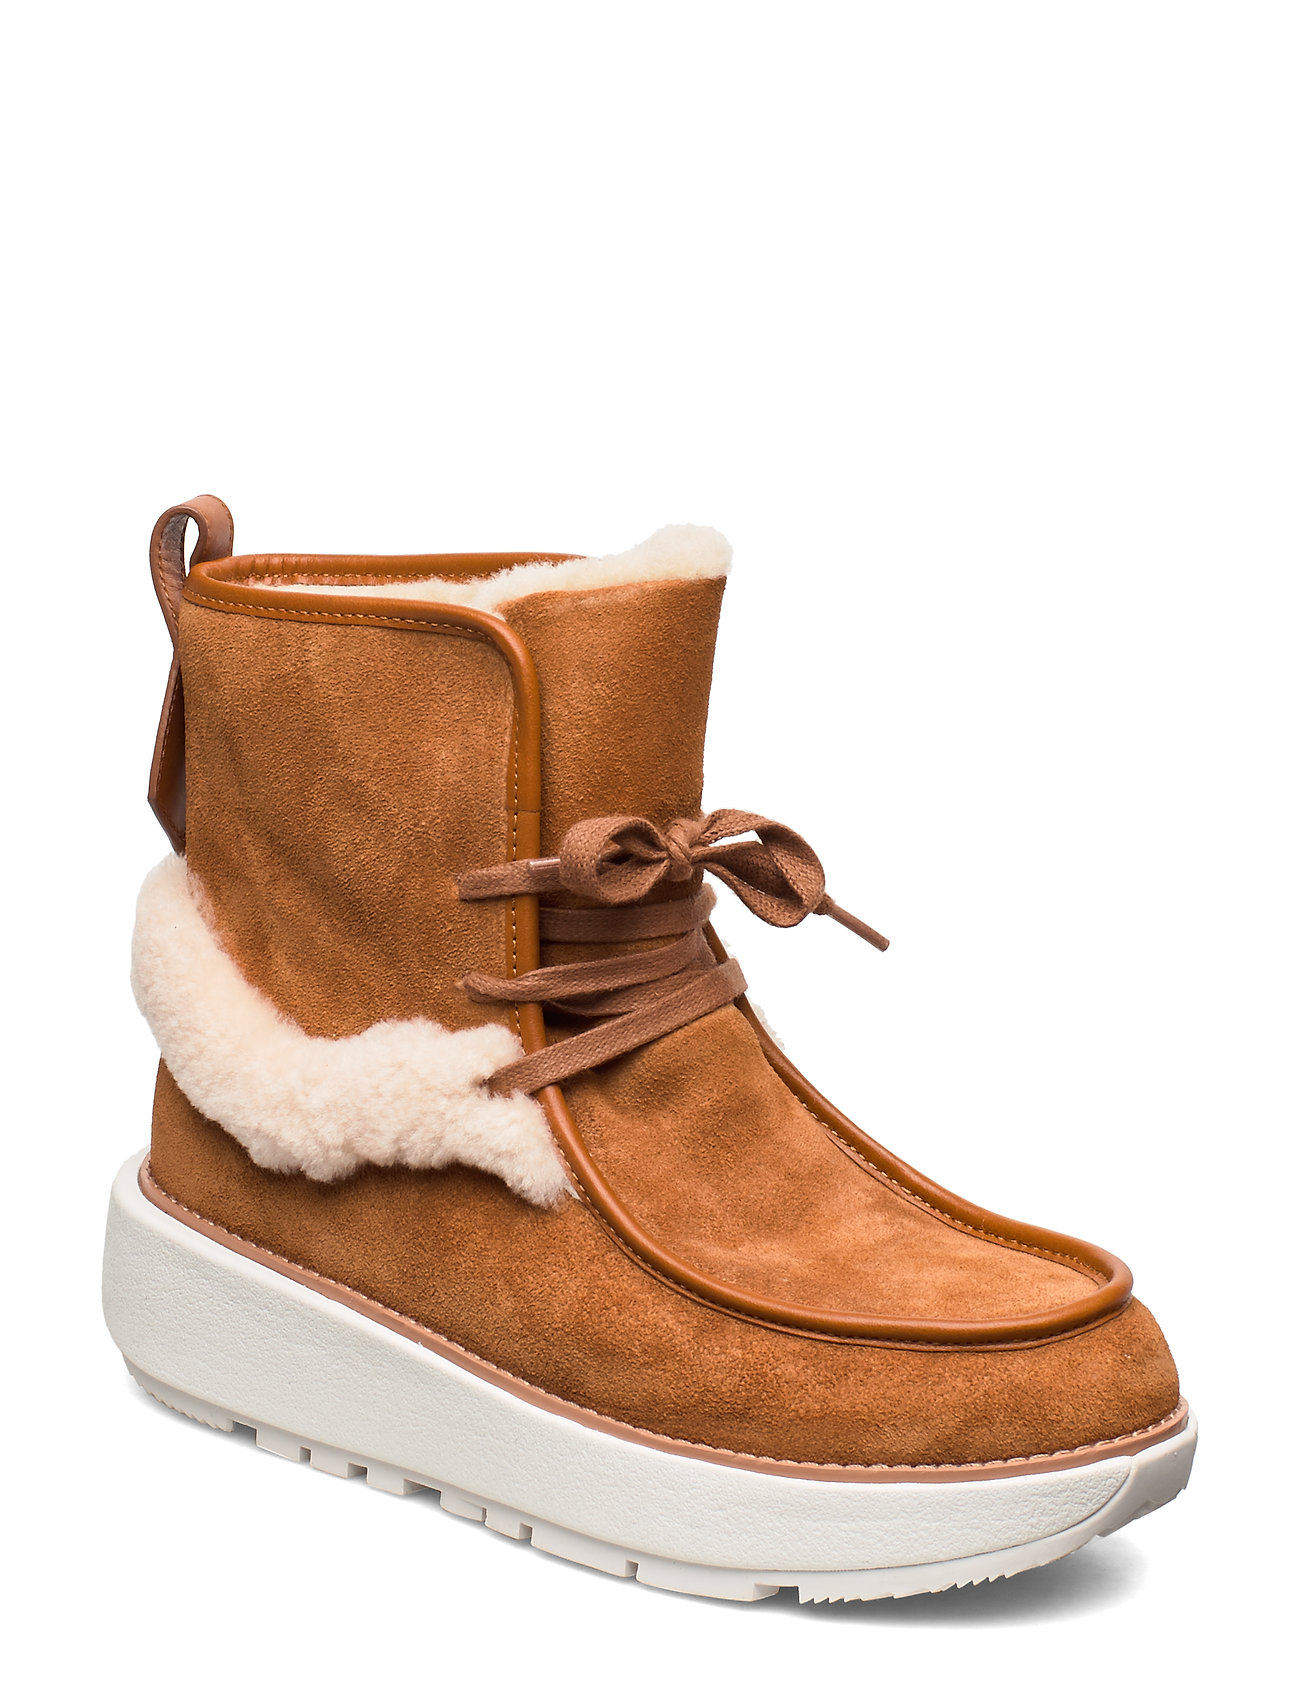 Image of Greta Moccassin Boot Shoes Boots Ankle Boots Ankle Boots Flat Heel Brun FitFlop (3250586867)